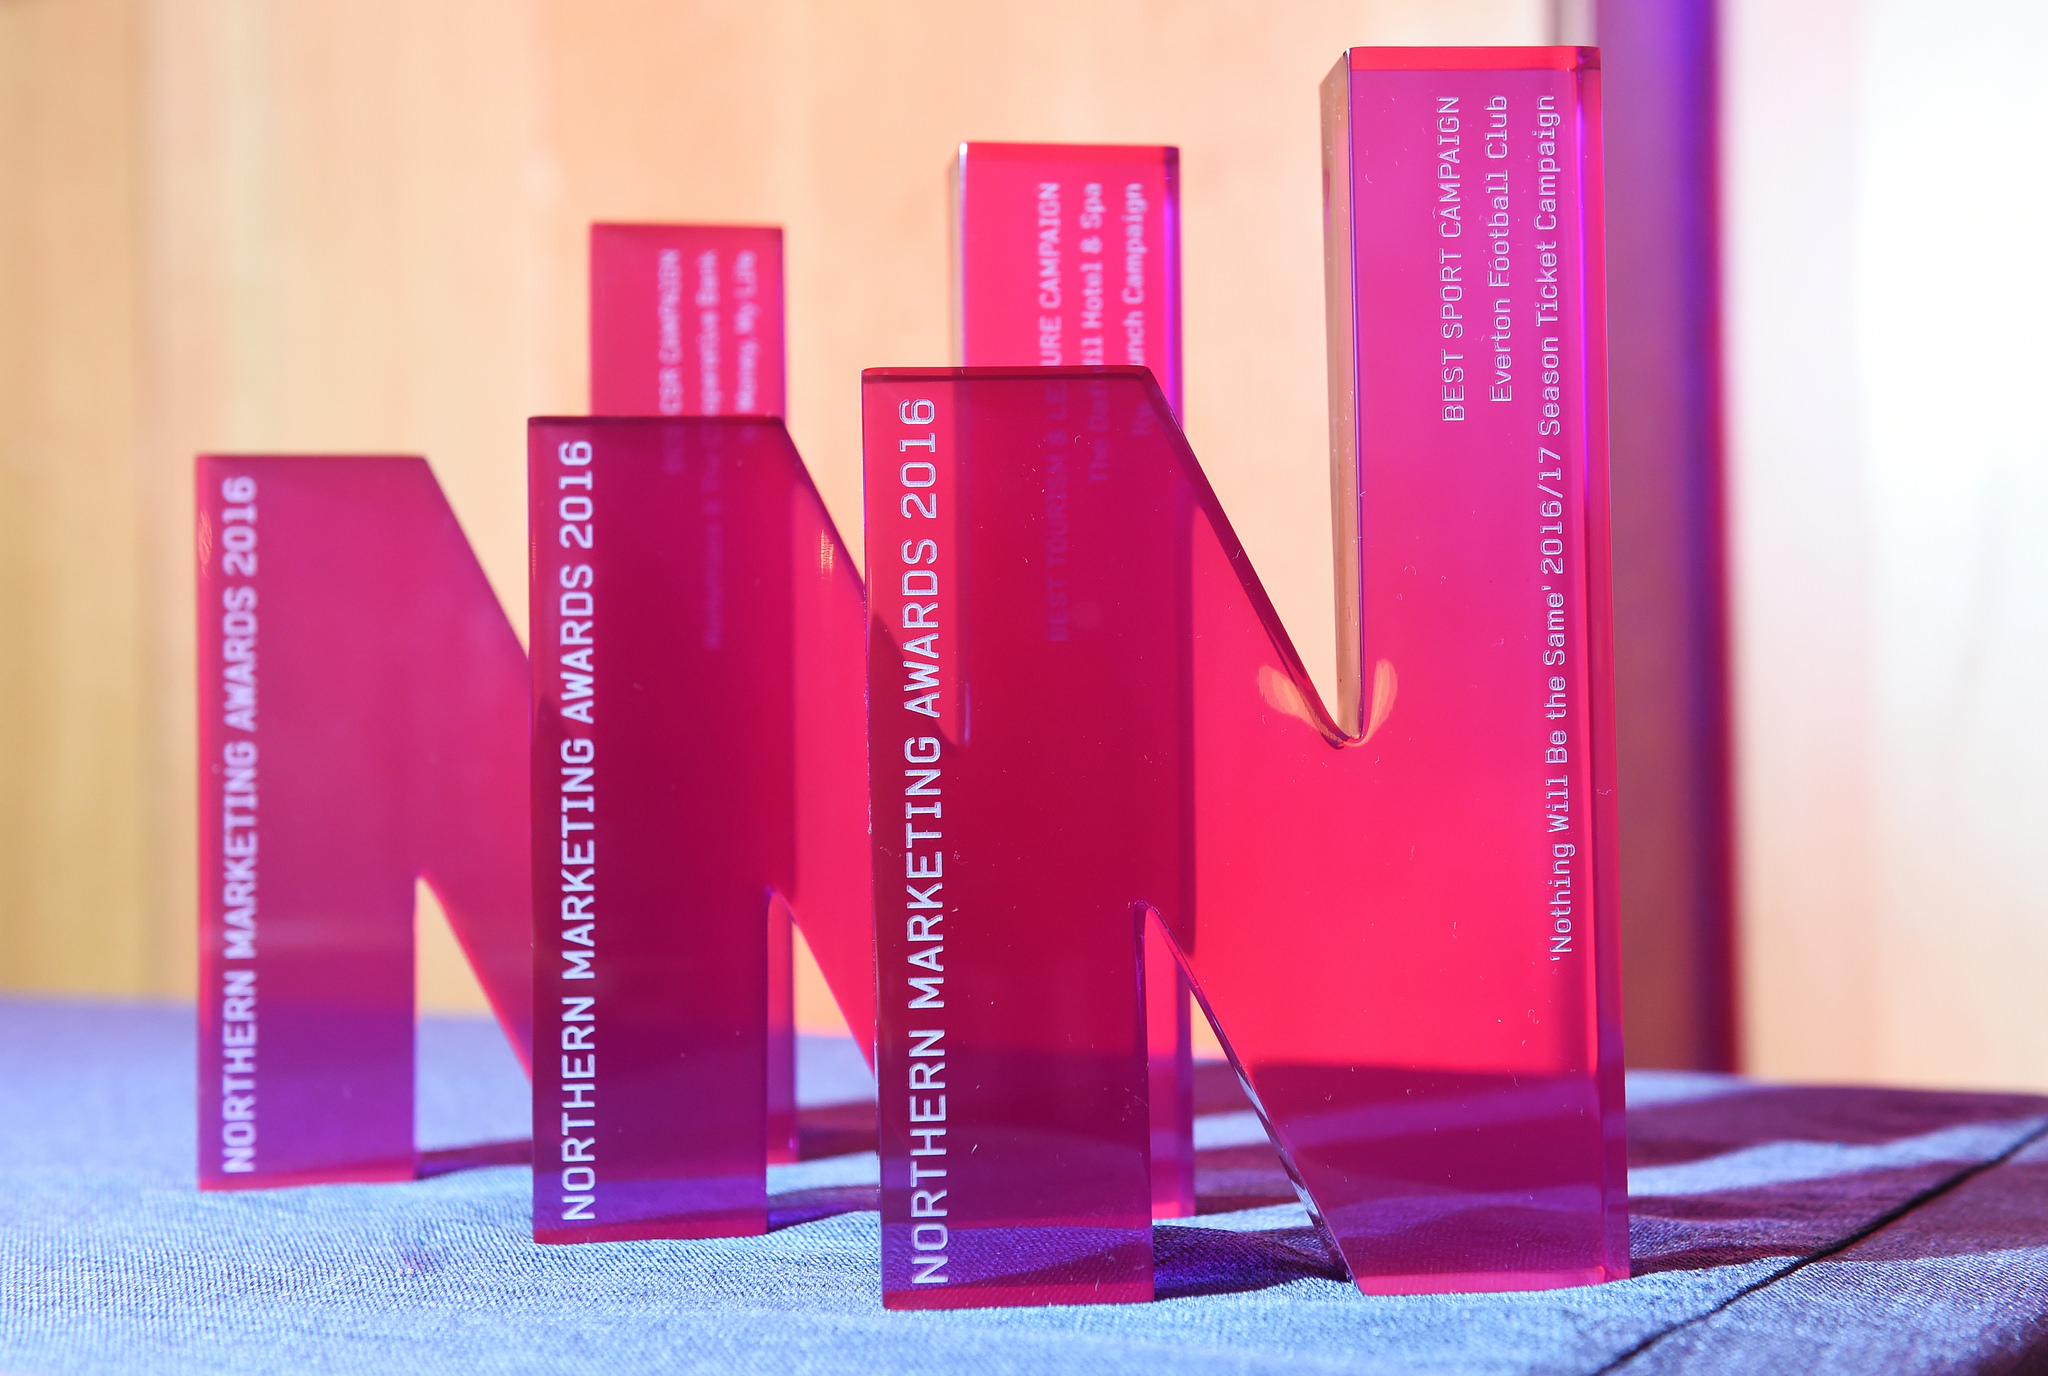 Close up picture of Northern Marketing Awards trophies lined up ion a table top.